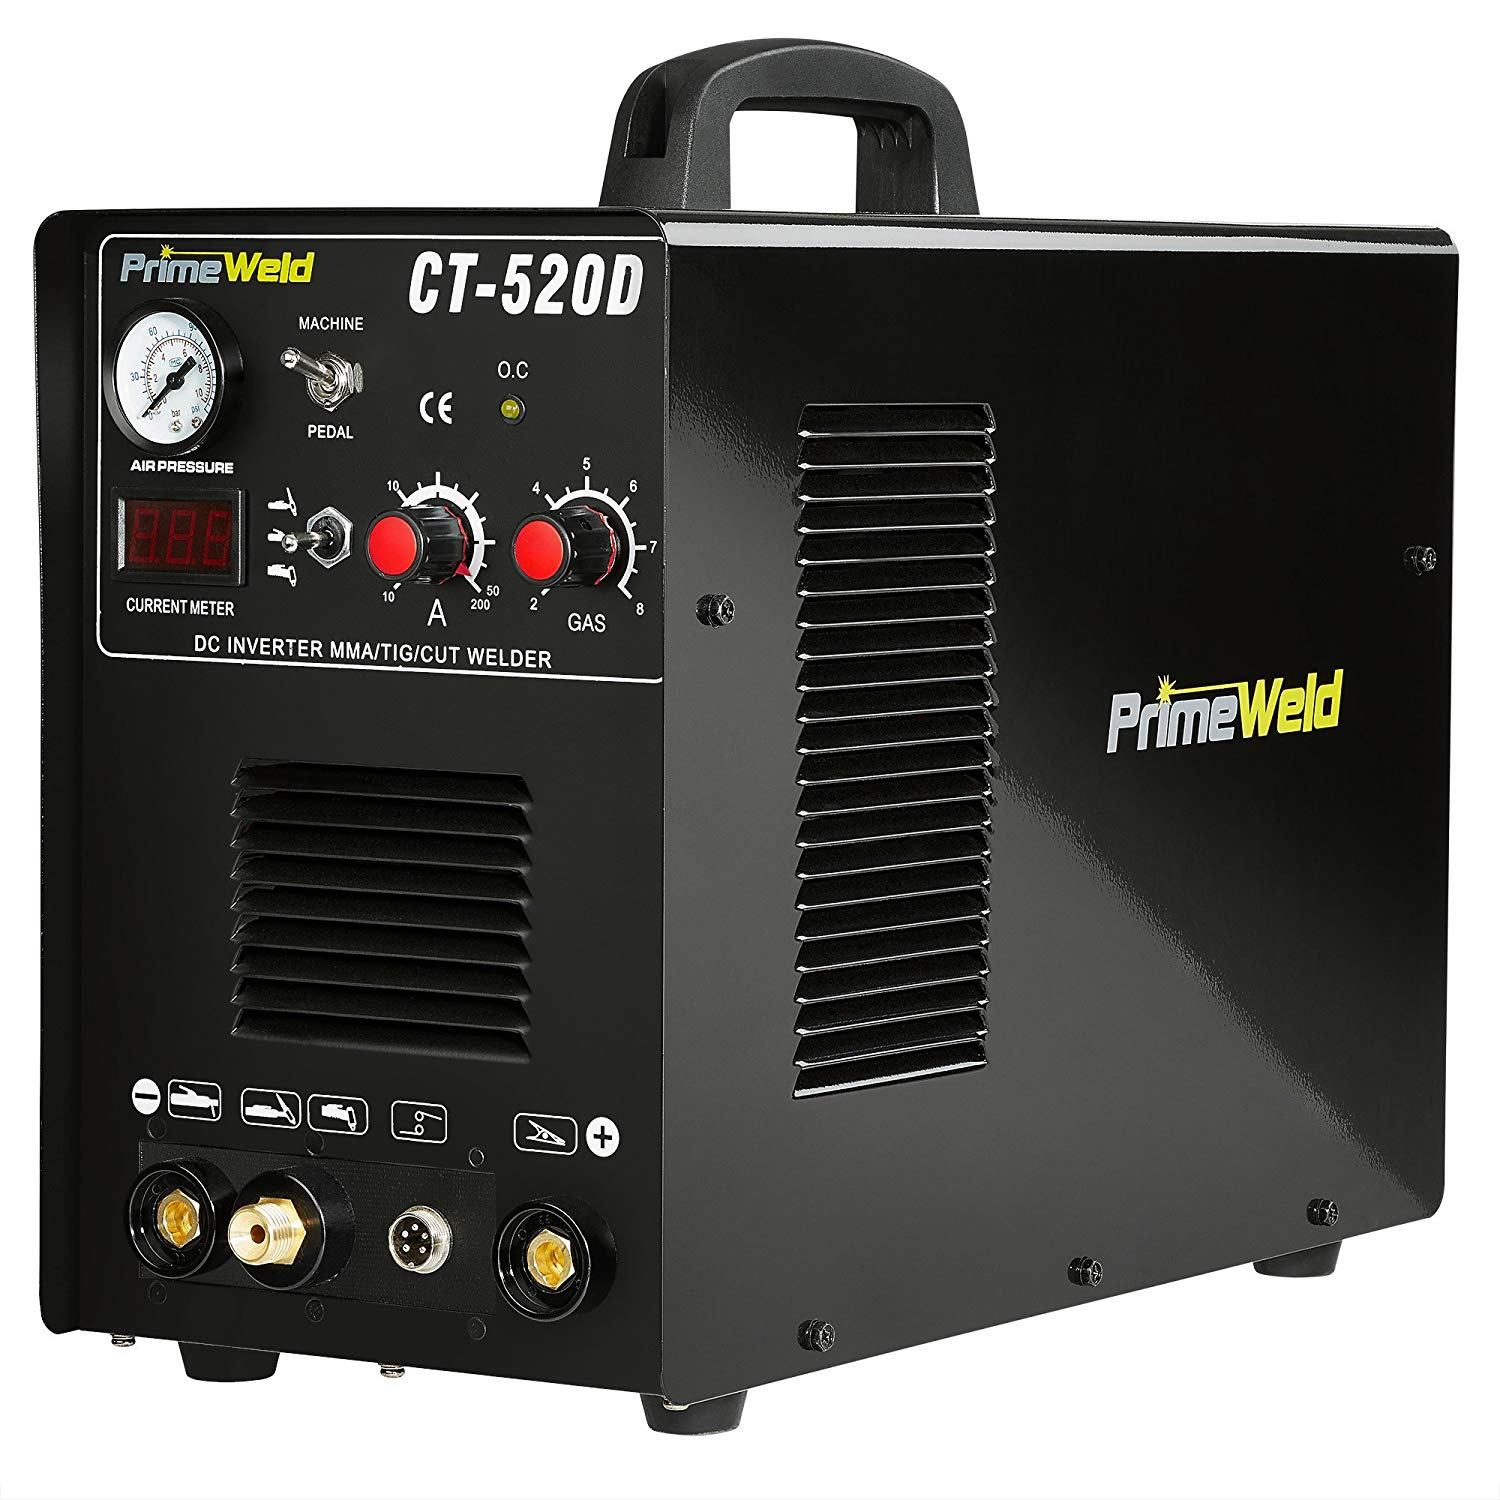 Prime Weld Ct520d Review